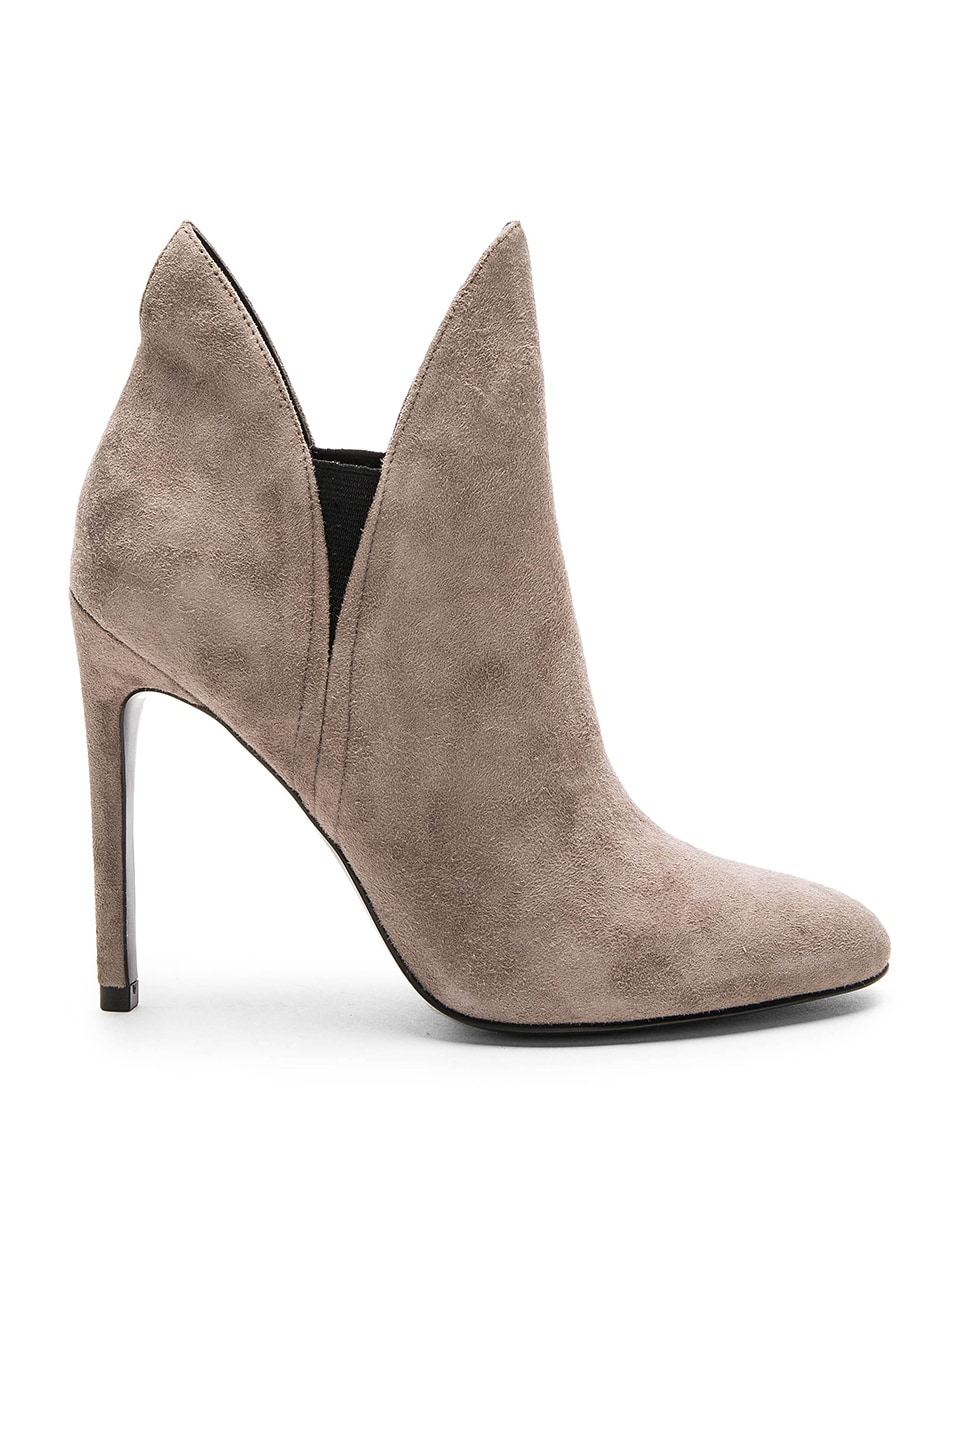 KENDALL + KYLIE Madison Bootie in Taupe Multi